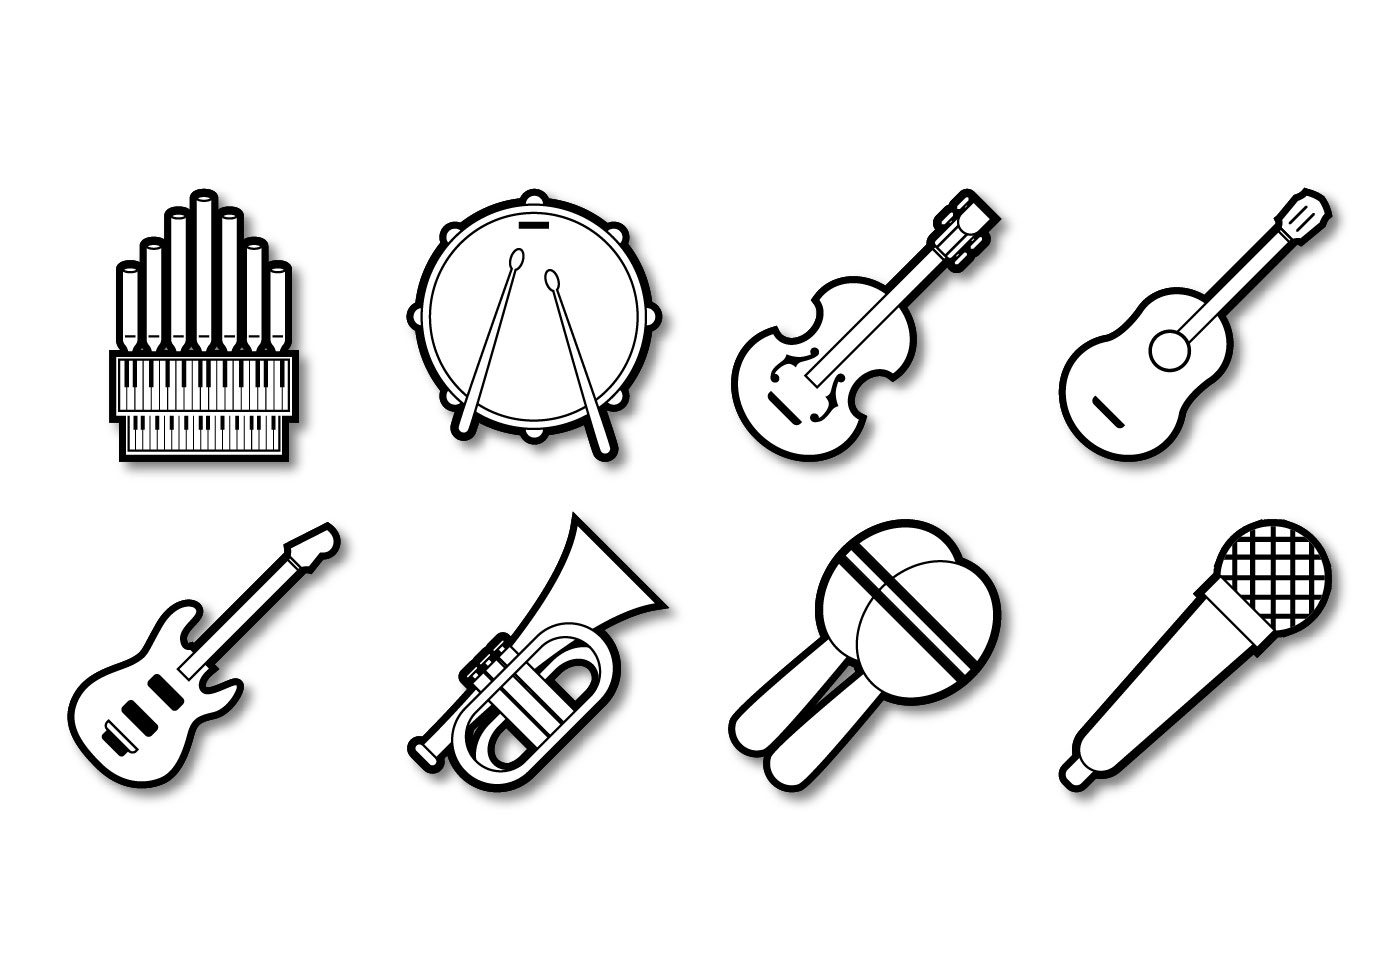 musical instrument drawings free music instrument icon vector download free vectors musical drawings instrument